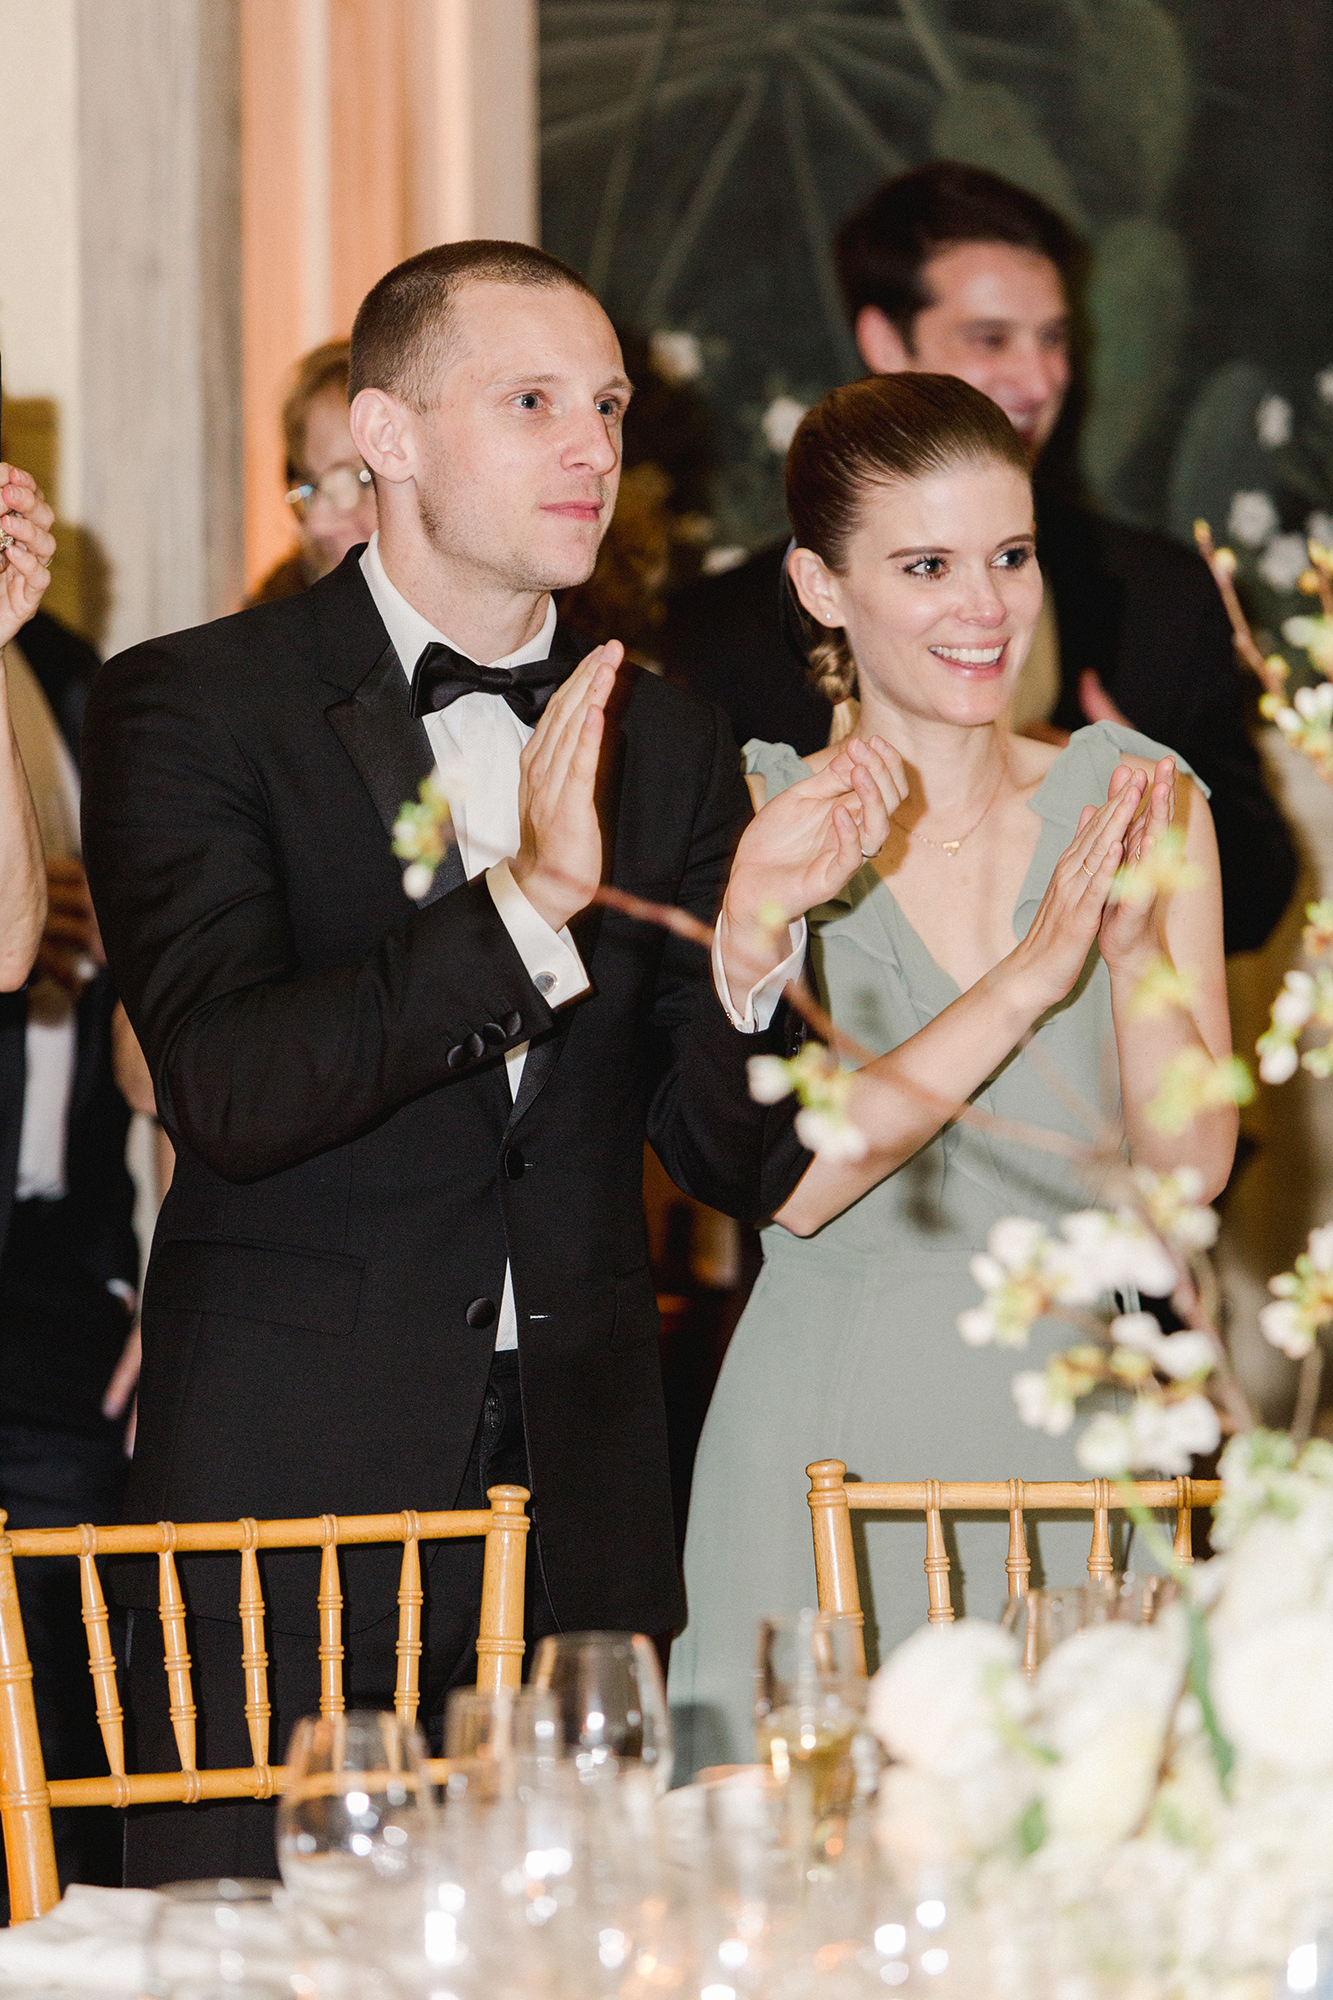 chelsea conor wedding guests applause